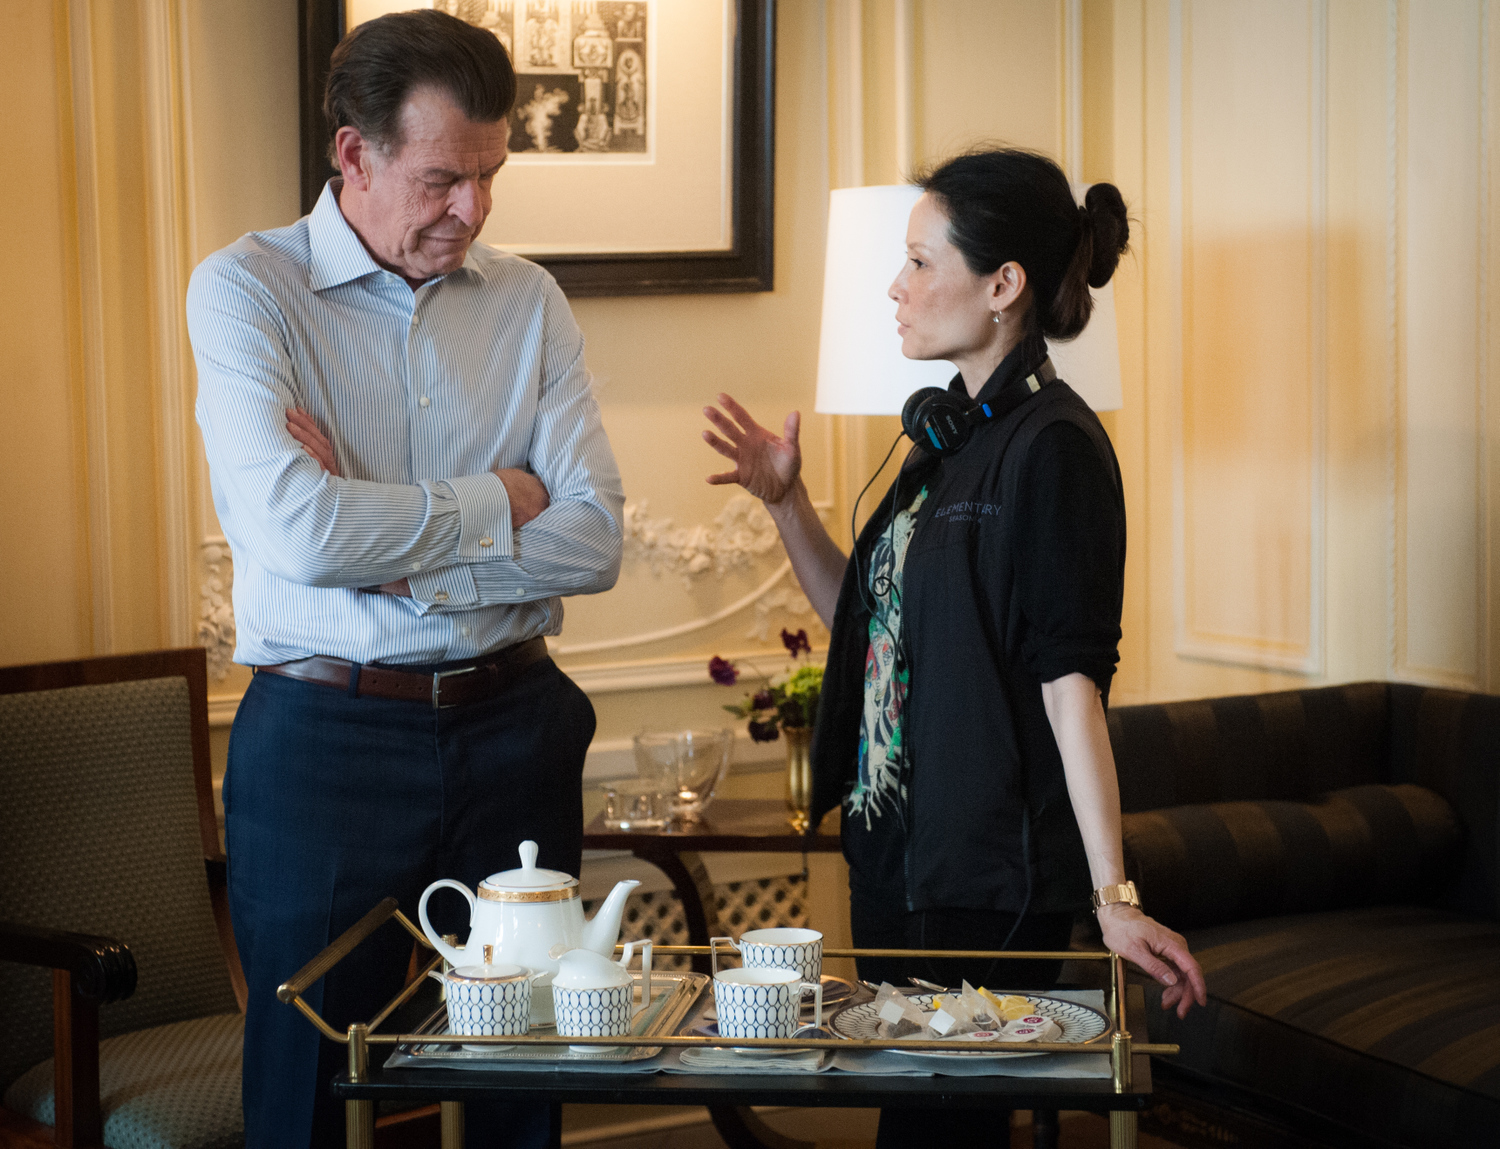 Lucy gives some instructions to John Noble